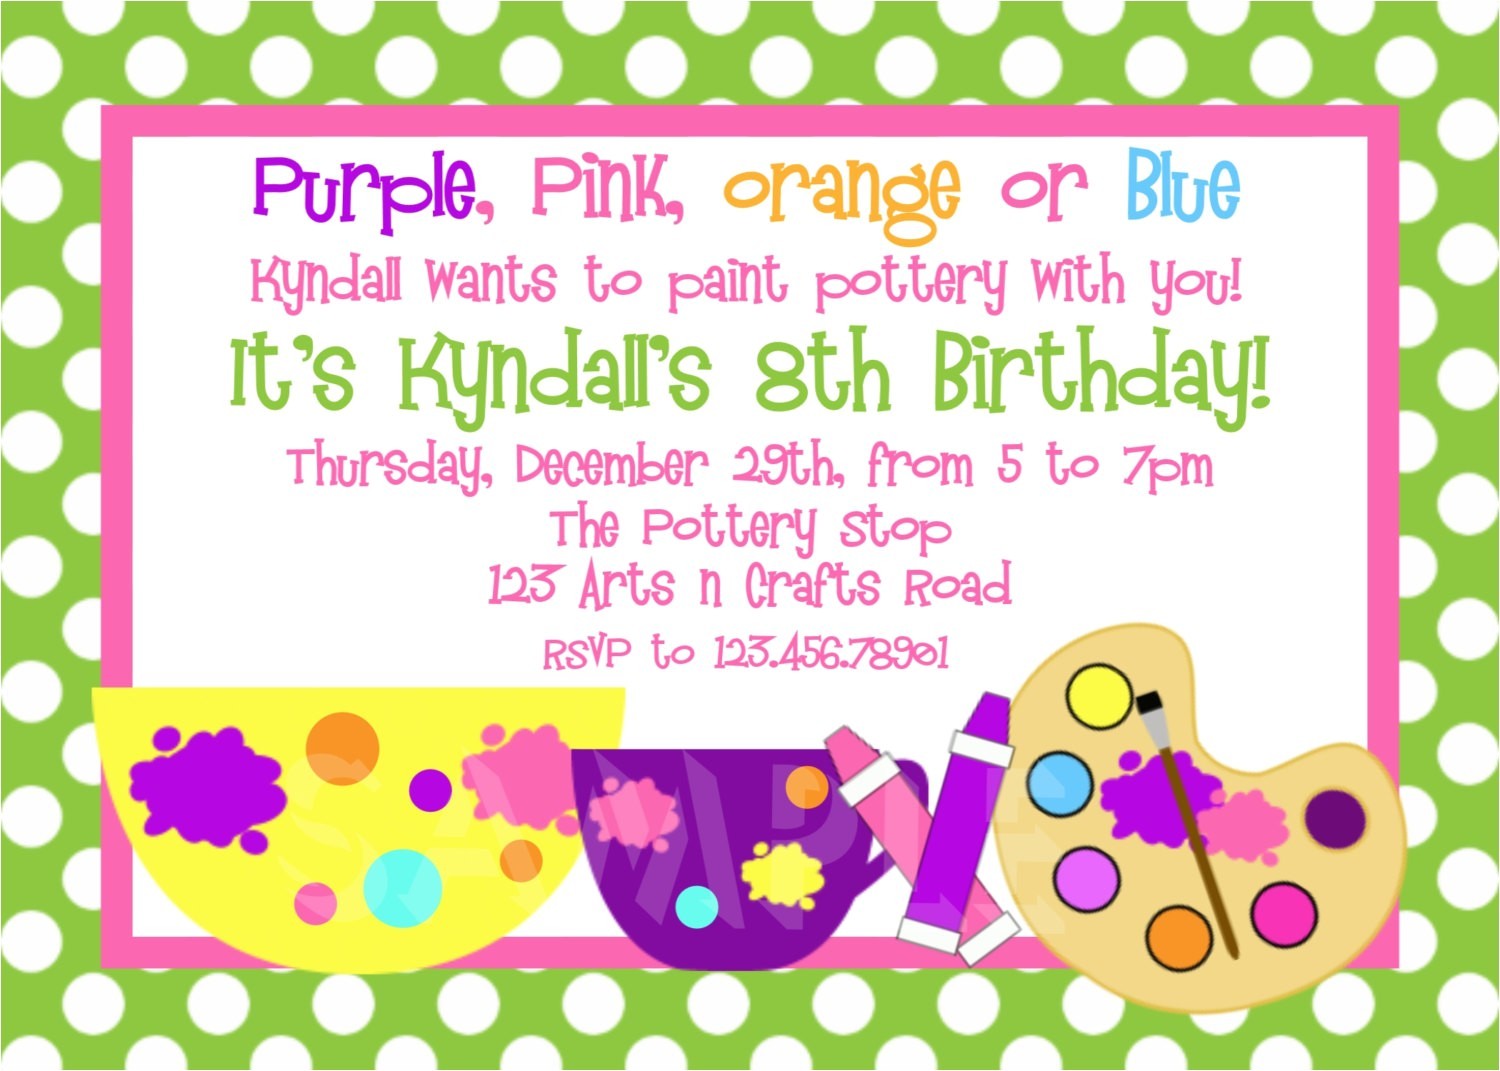 pottery arts and crafts birthday party invitation